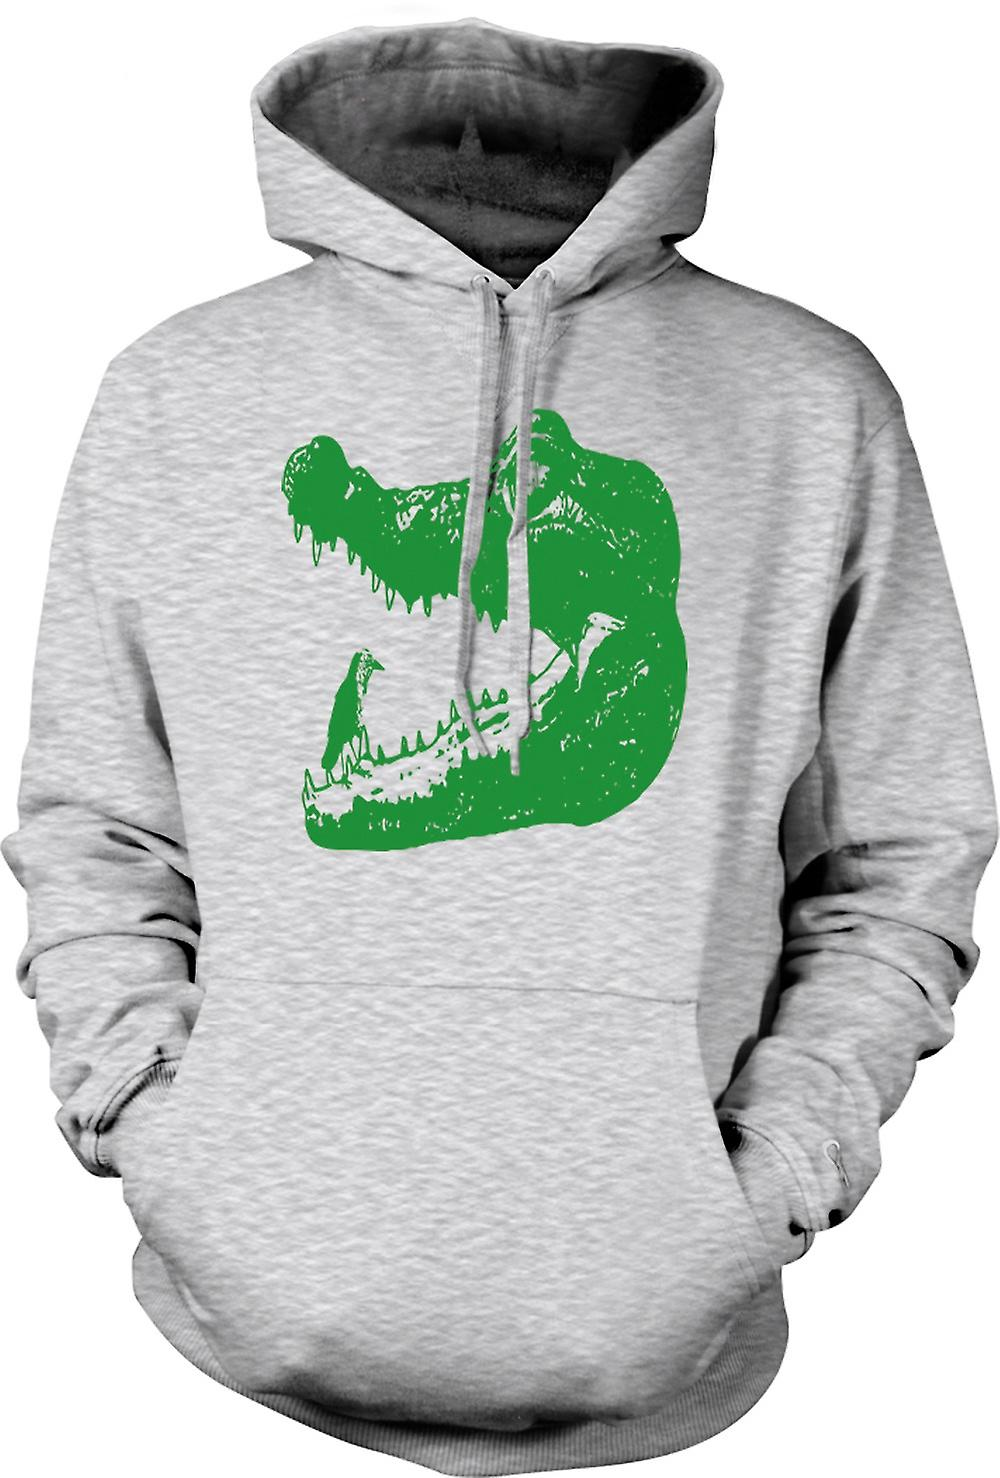 Mens Hoodie - Cool Aligator Crocodile - Cool Graphic Design